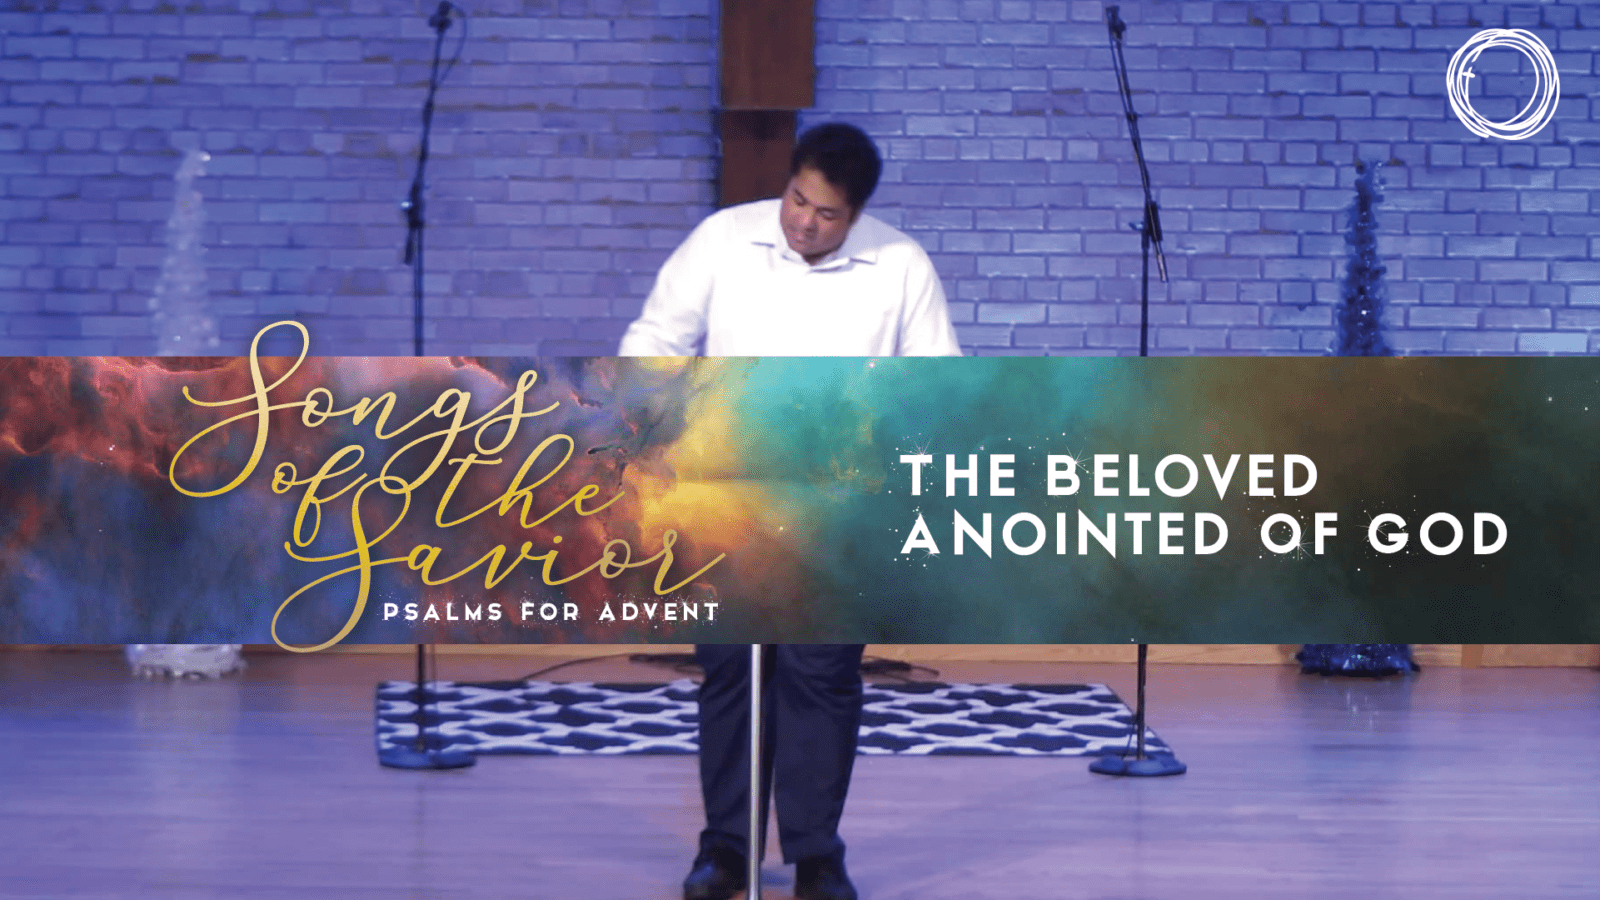 The Beloved Anointed of God